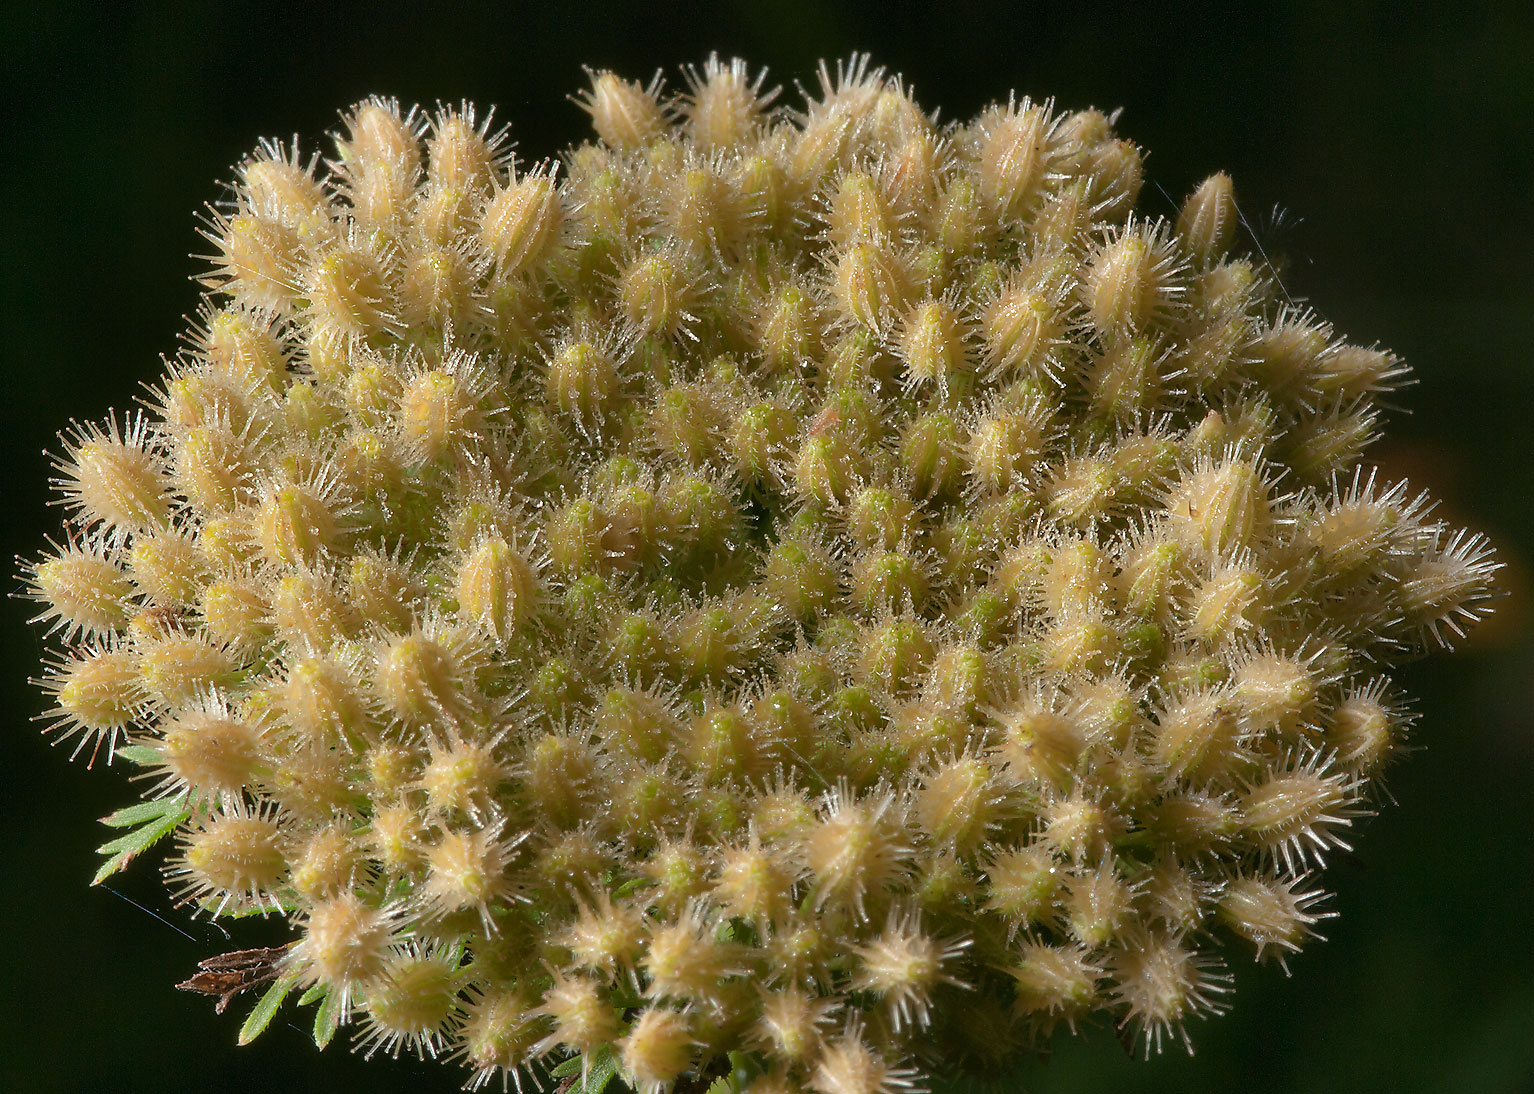 Seed head of wild carrot (Daucus pusillus) in Lick Creek Park. College Station, Texas